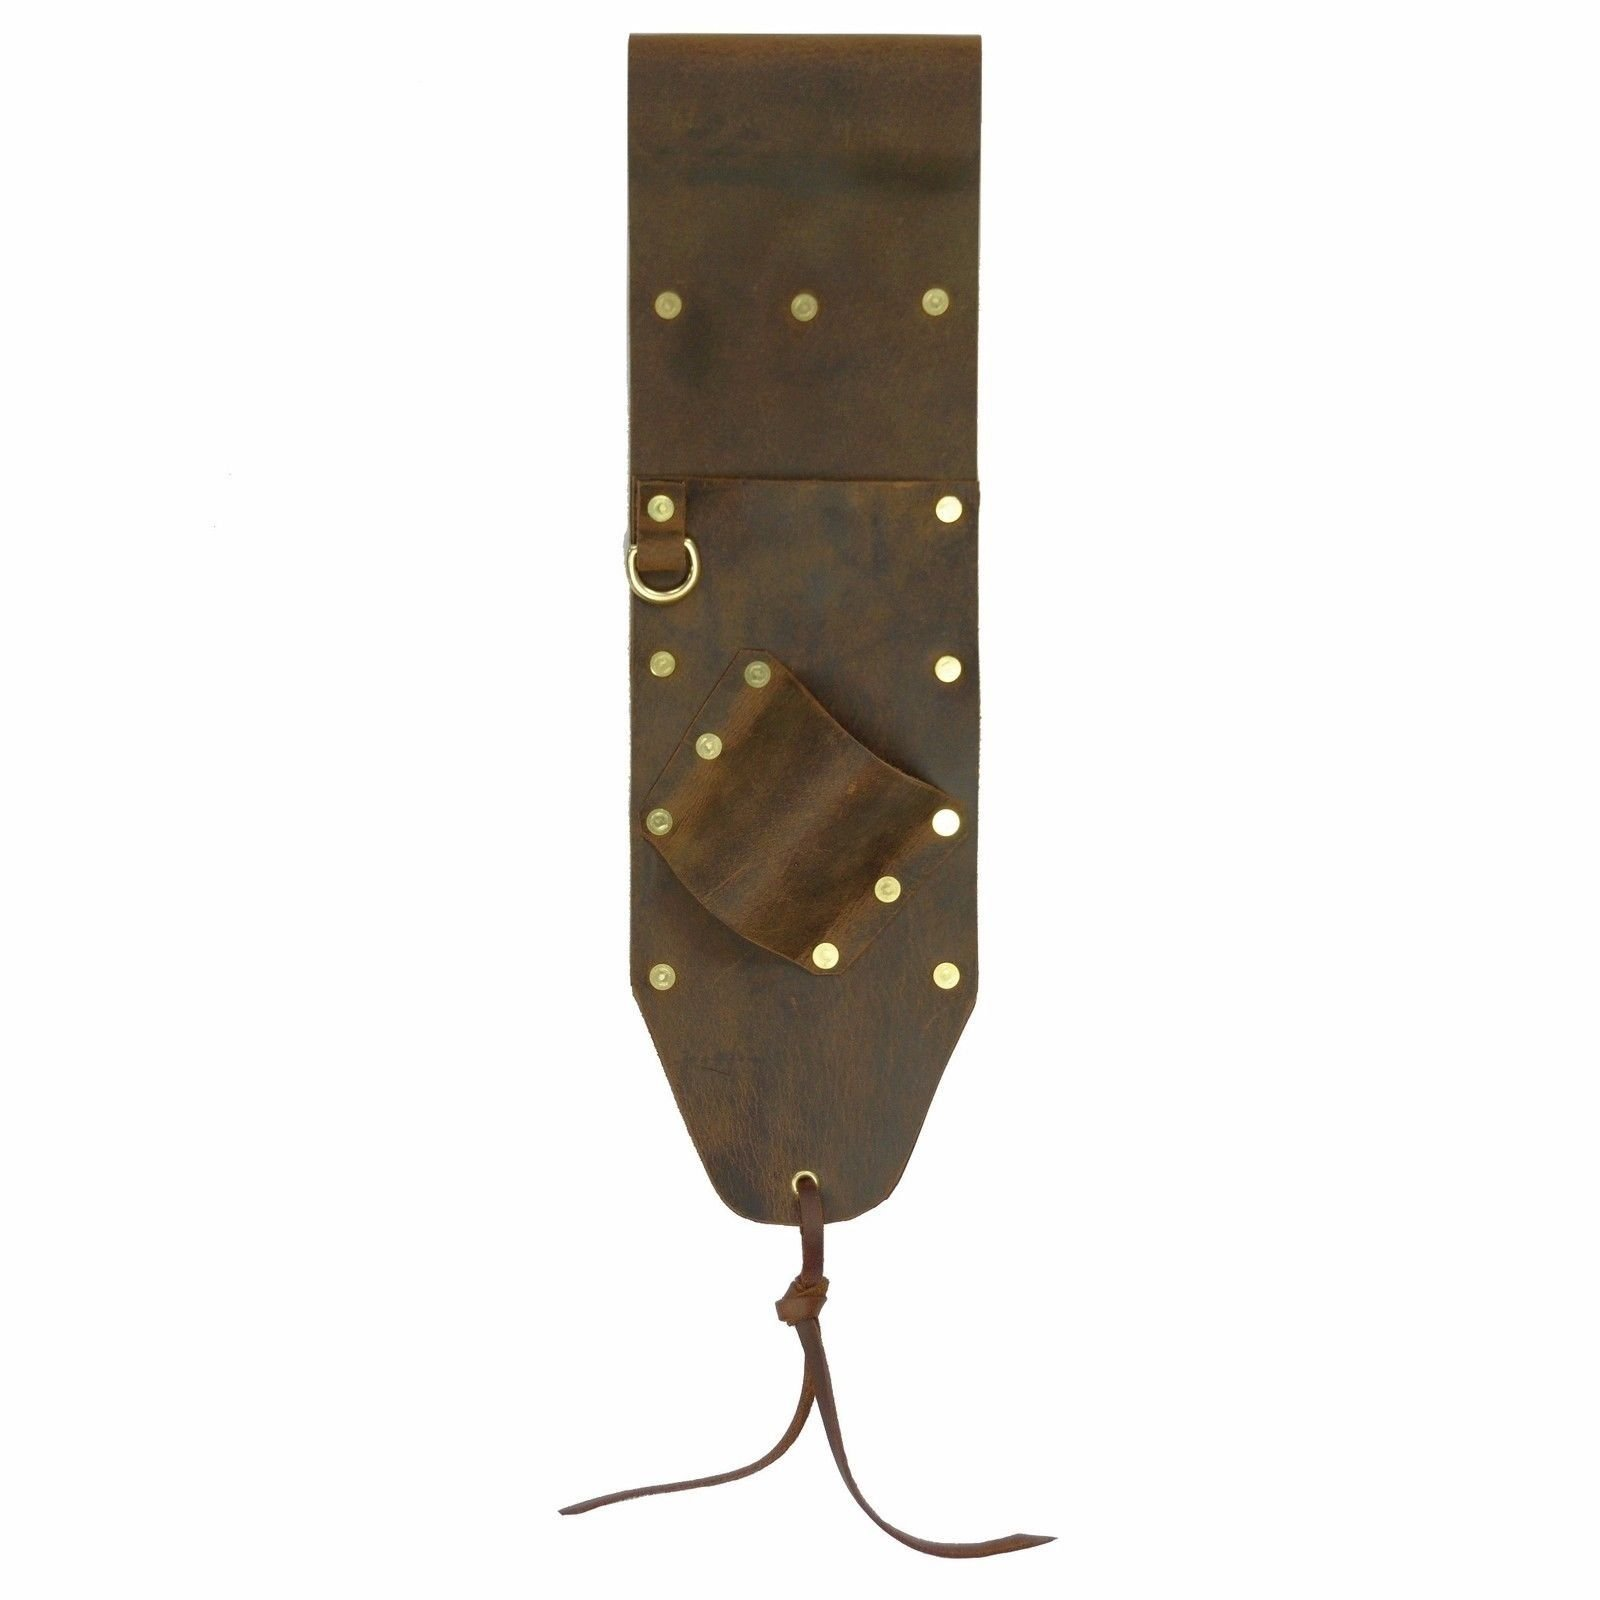 Brown Leather Sheath for PinPointer and Digging Tool Right Sided by Leather Barn